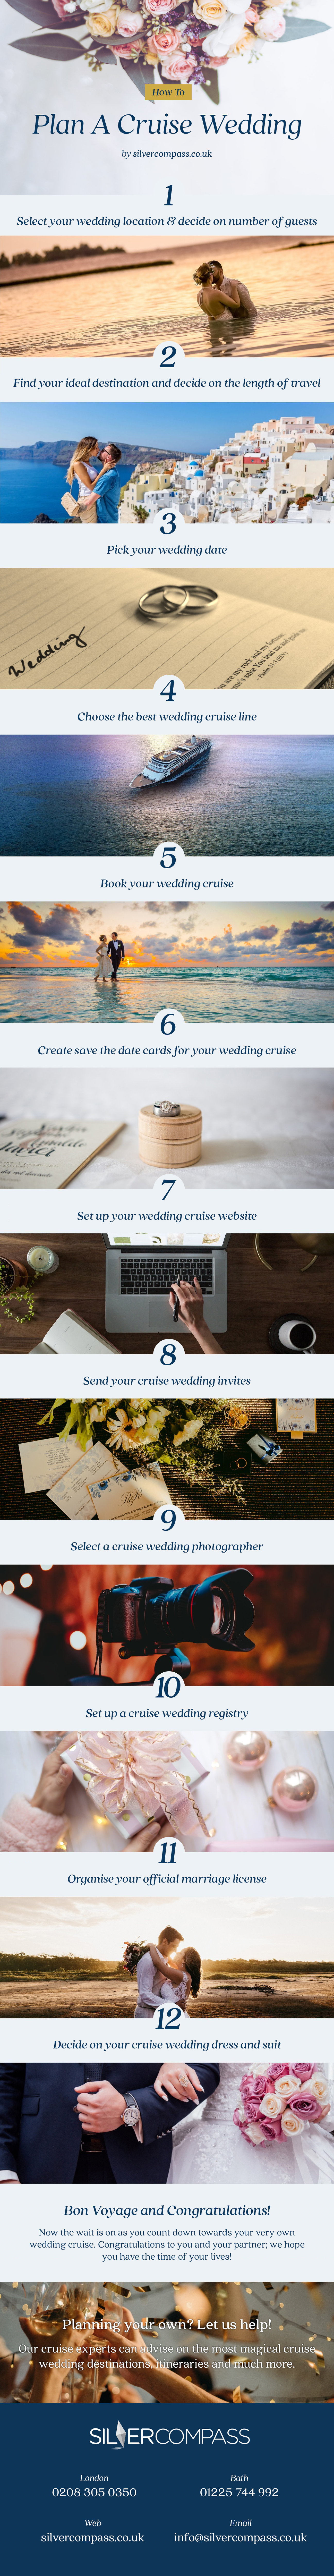 Your One-Stop Guide to the Perfect Cruise Wedding - Infographic